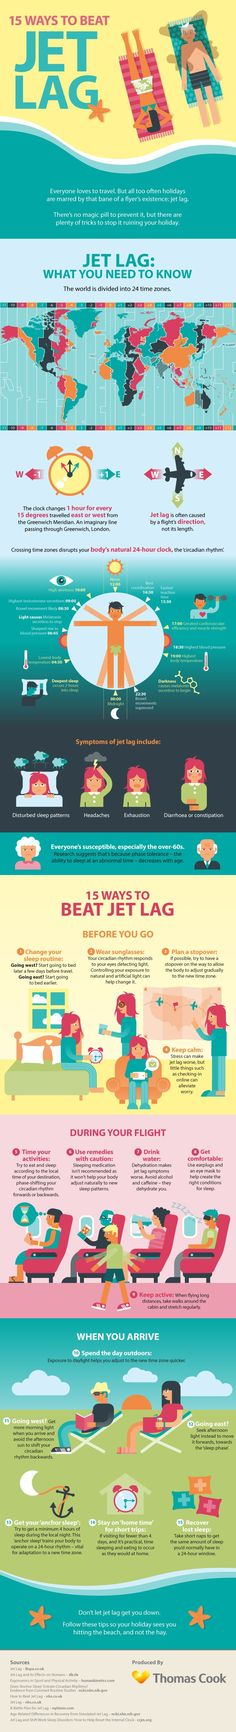 15 Not-So-Obvious Ways To Cure Jet Lag